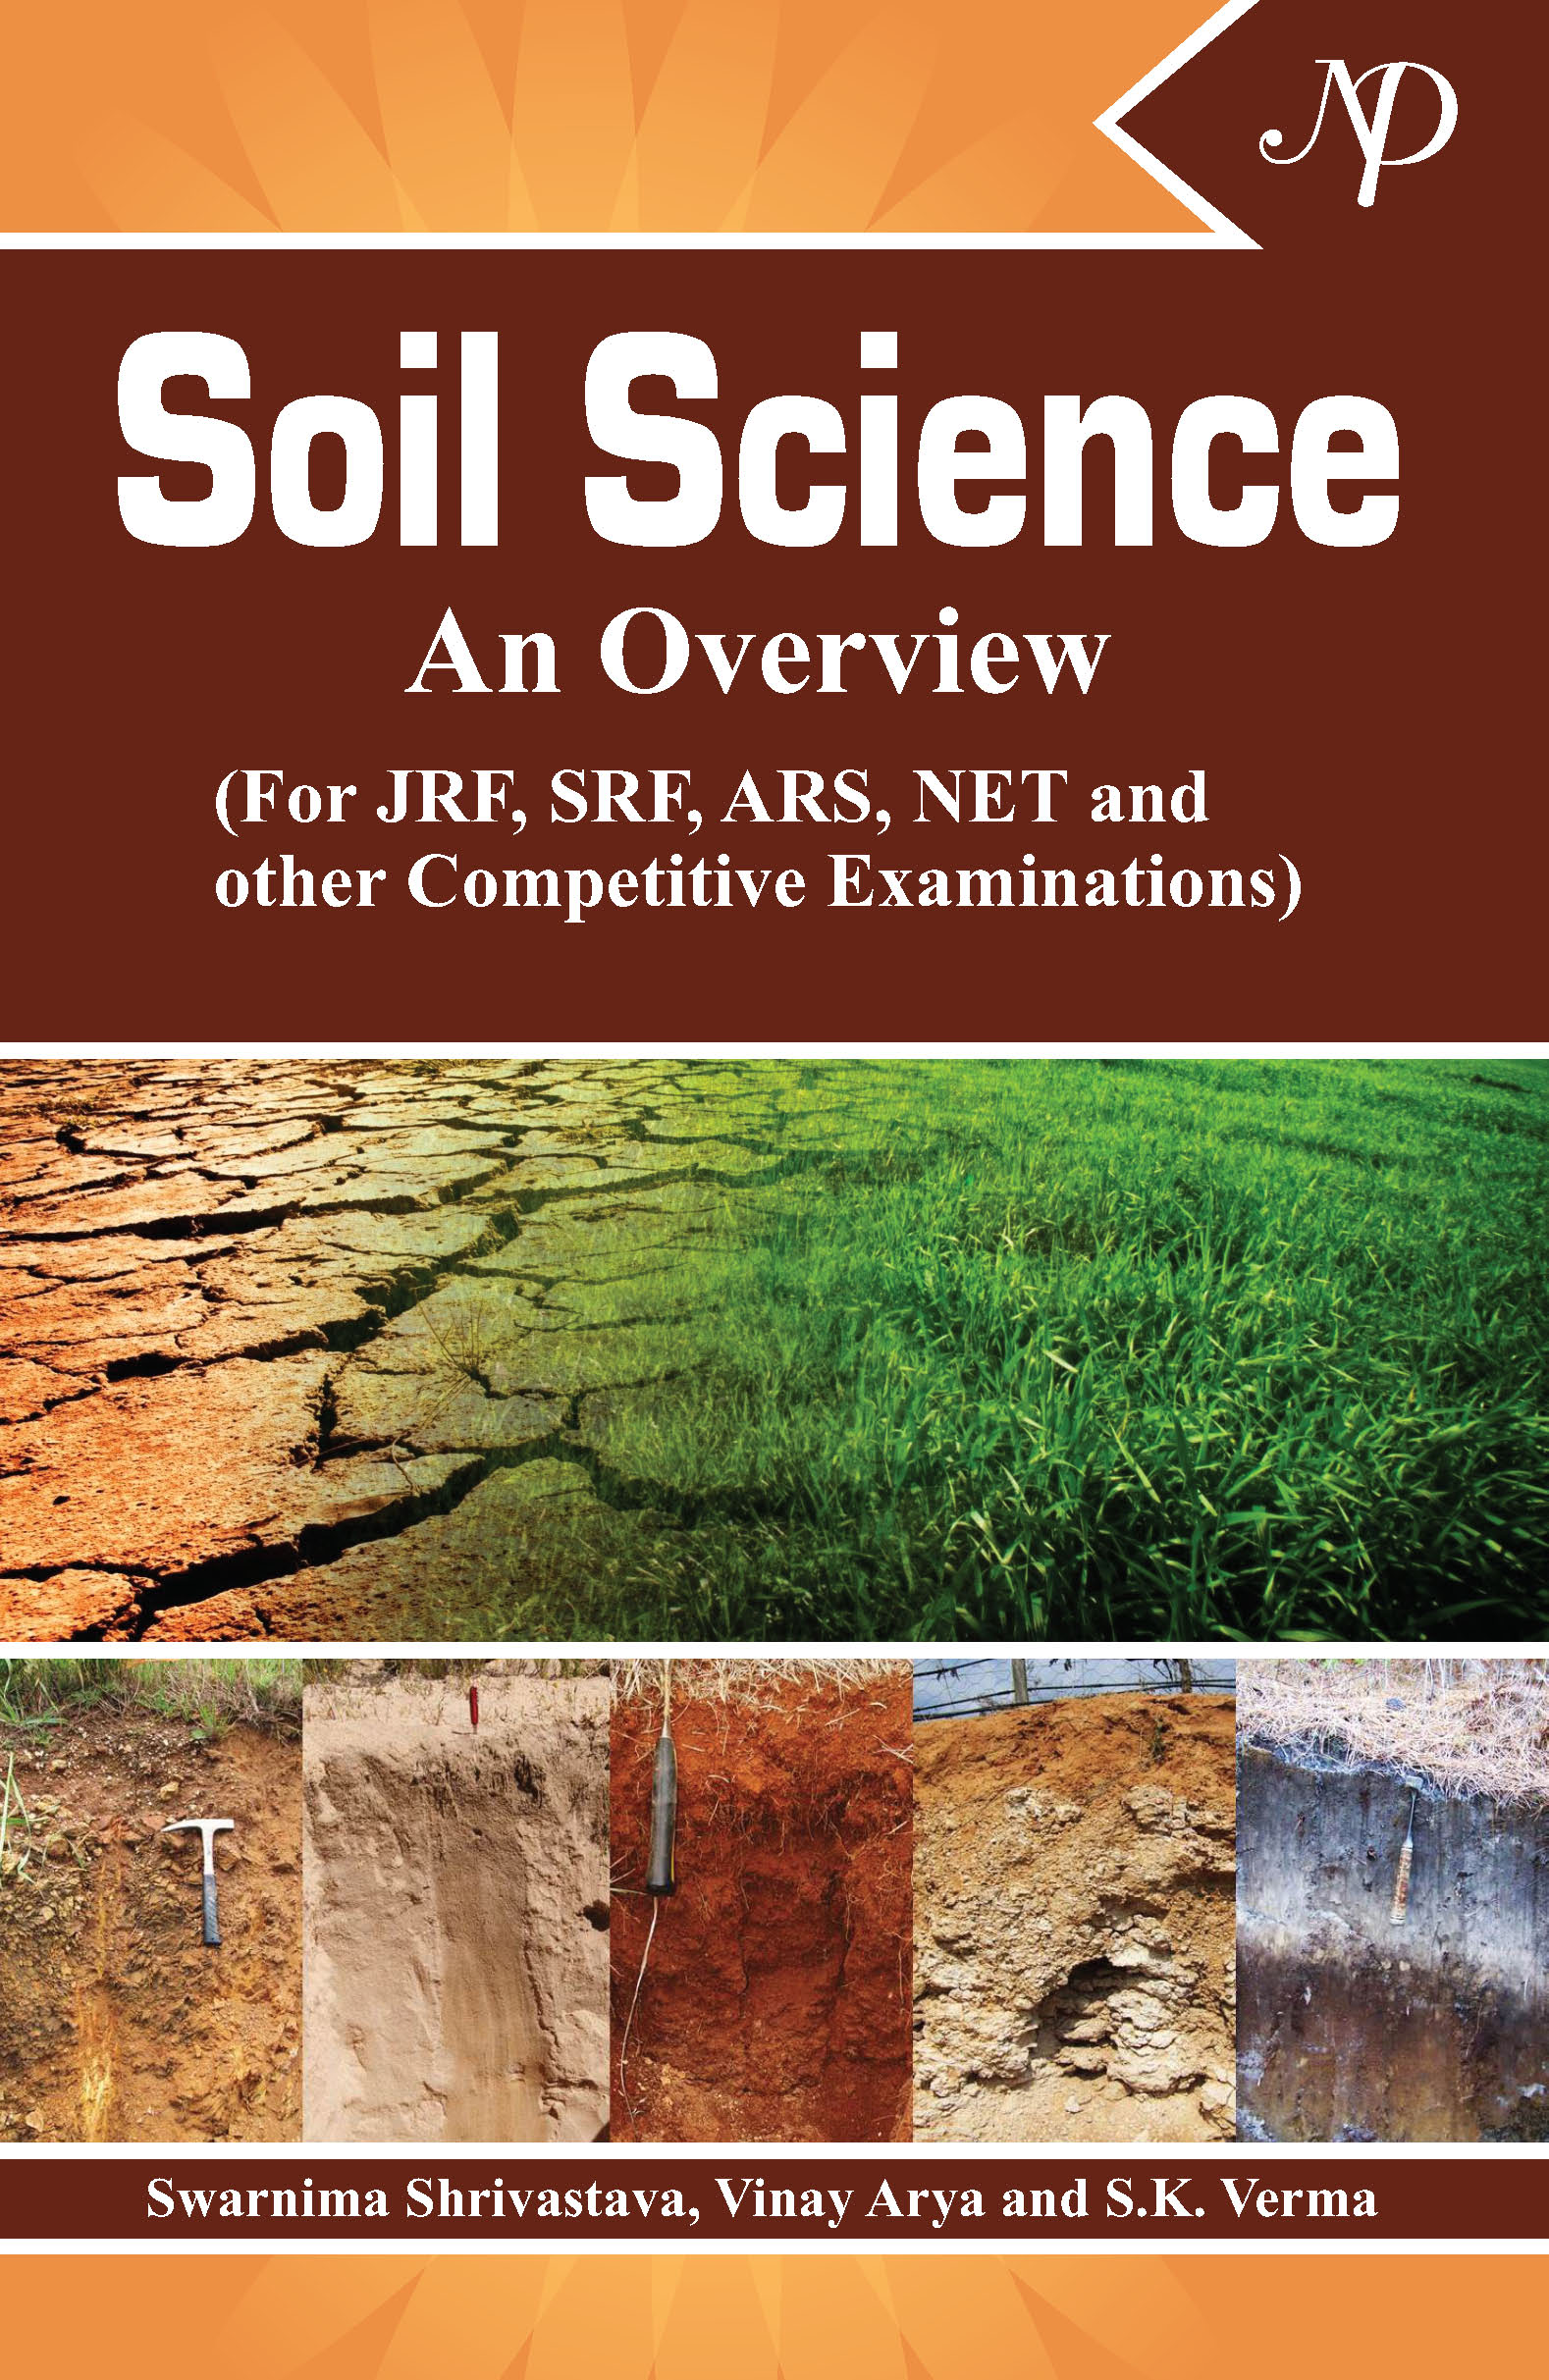 soil science an Overview--9-8-18.jpg